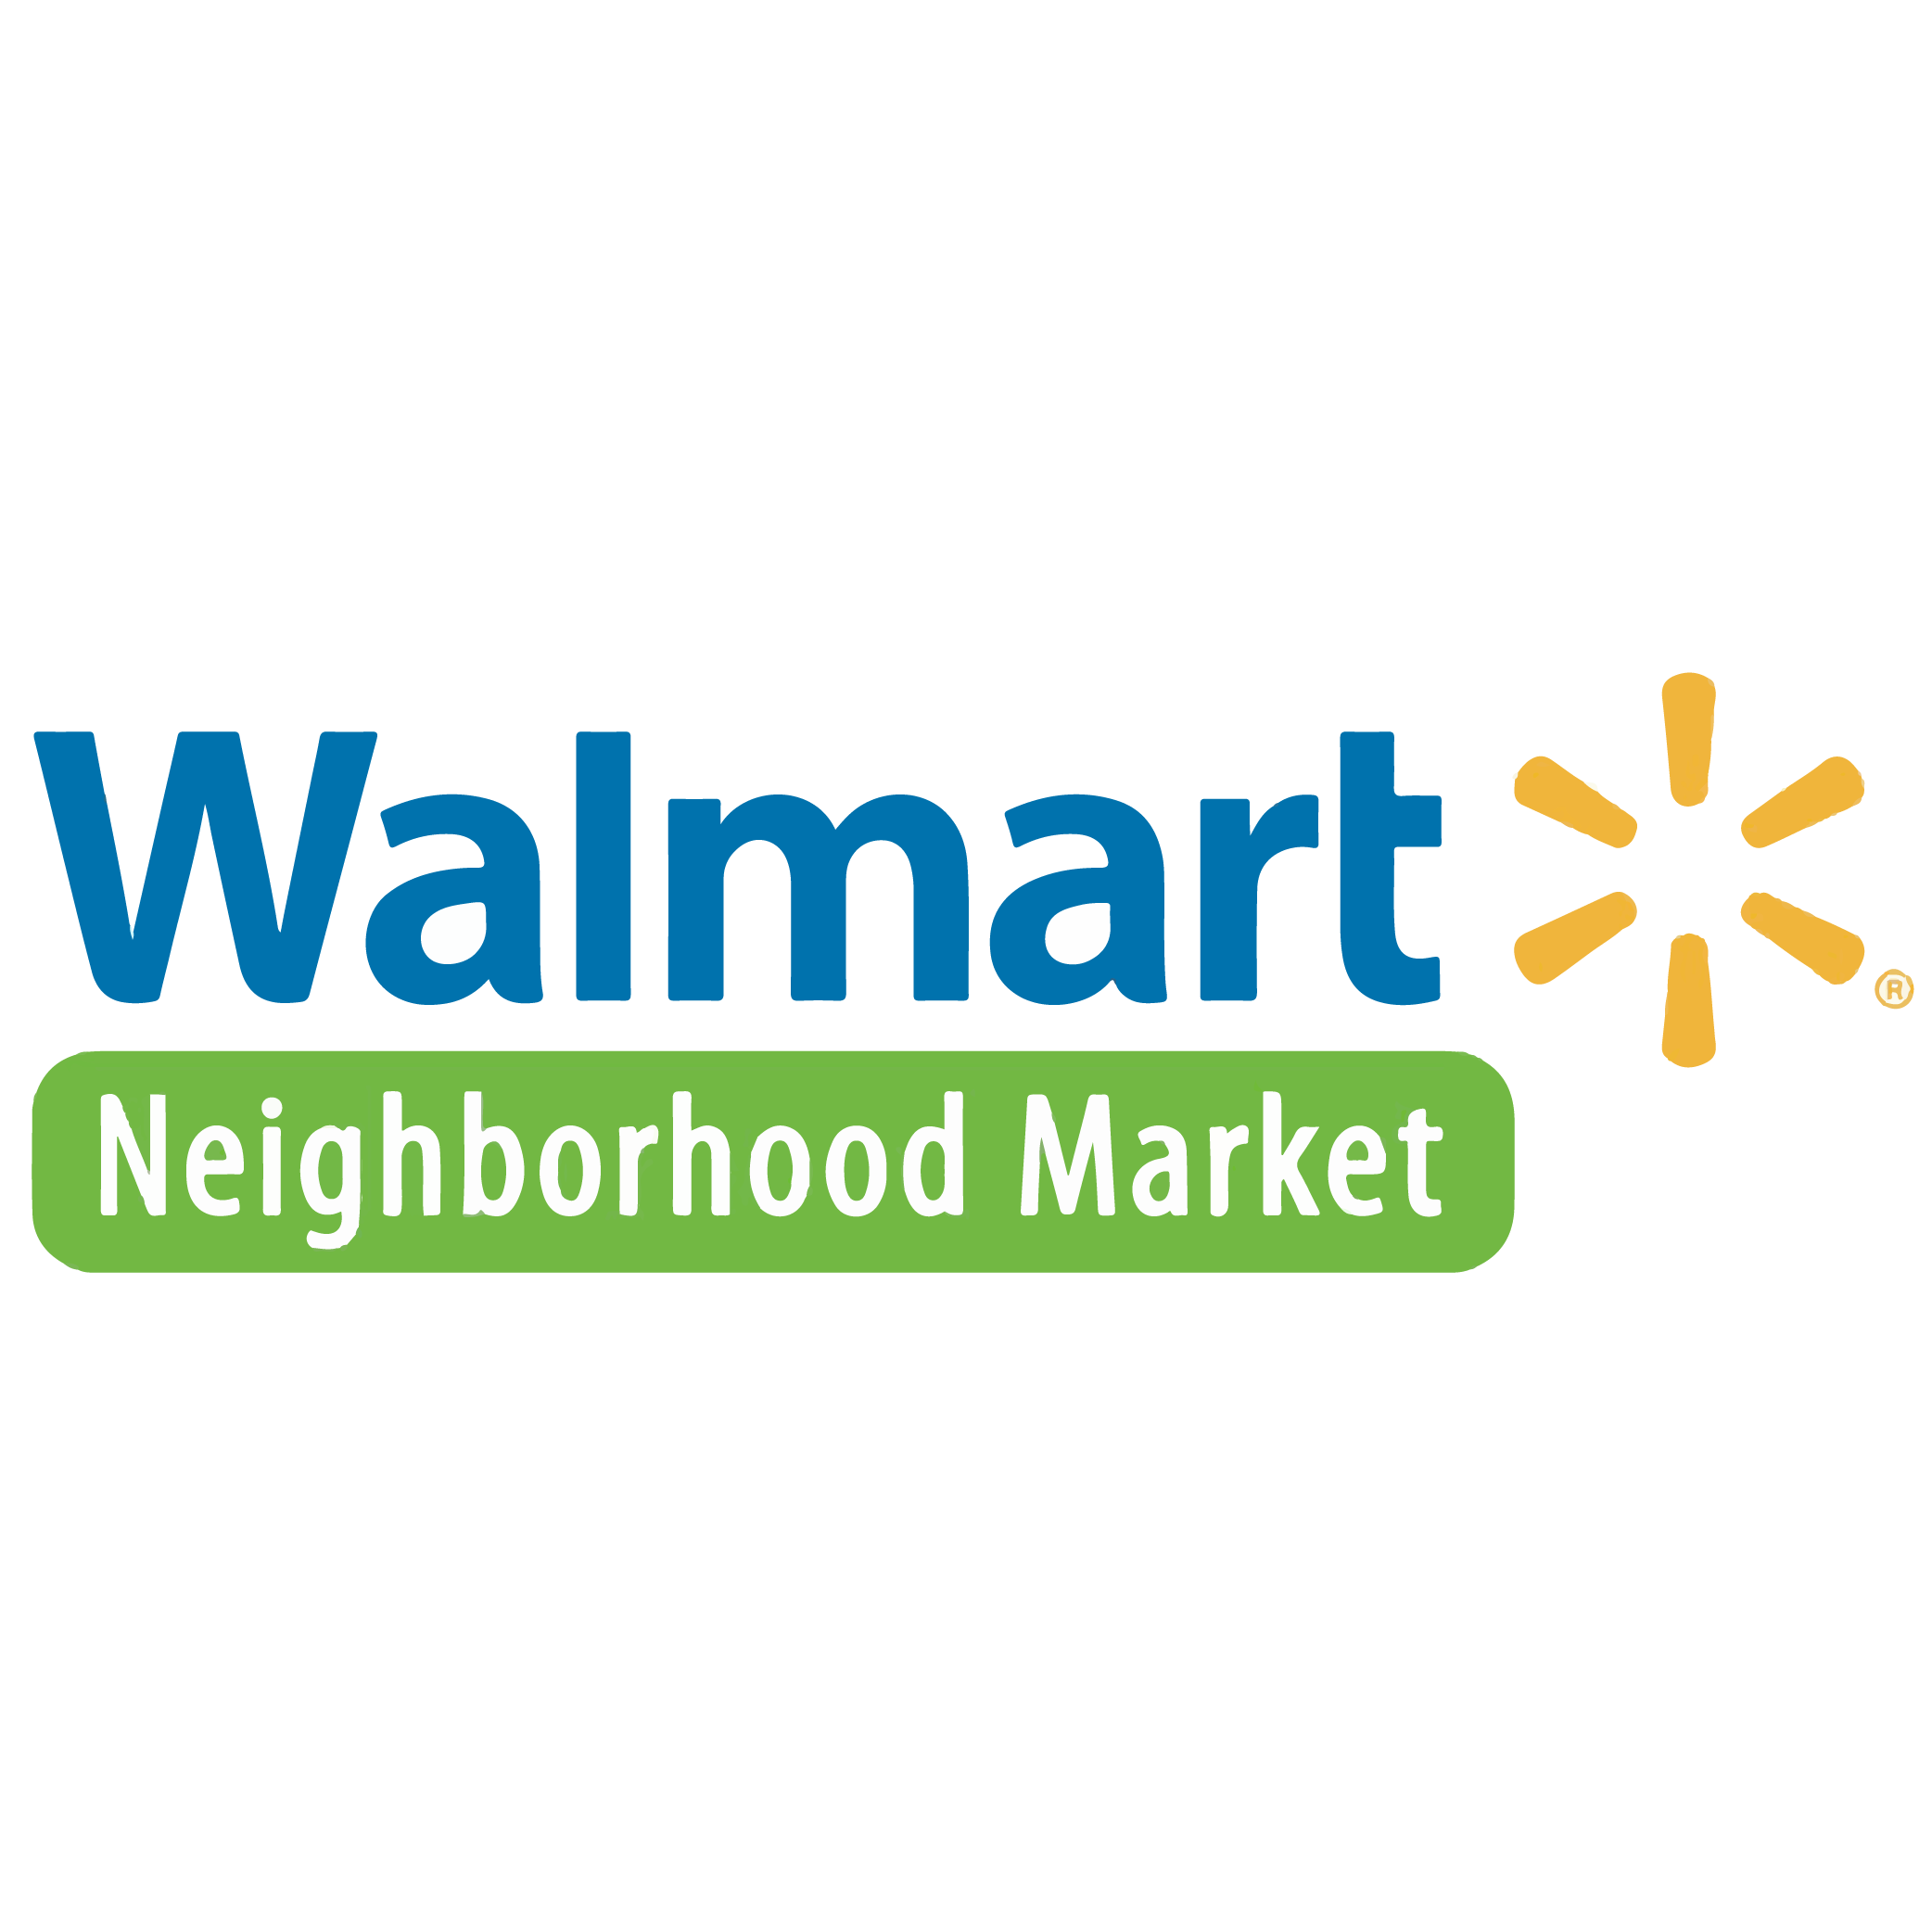 Walmart Neighborhood Market Logo Image Product.